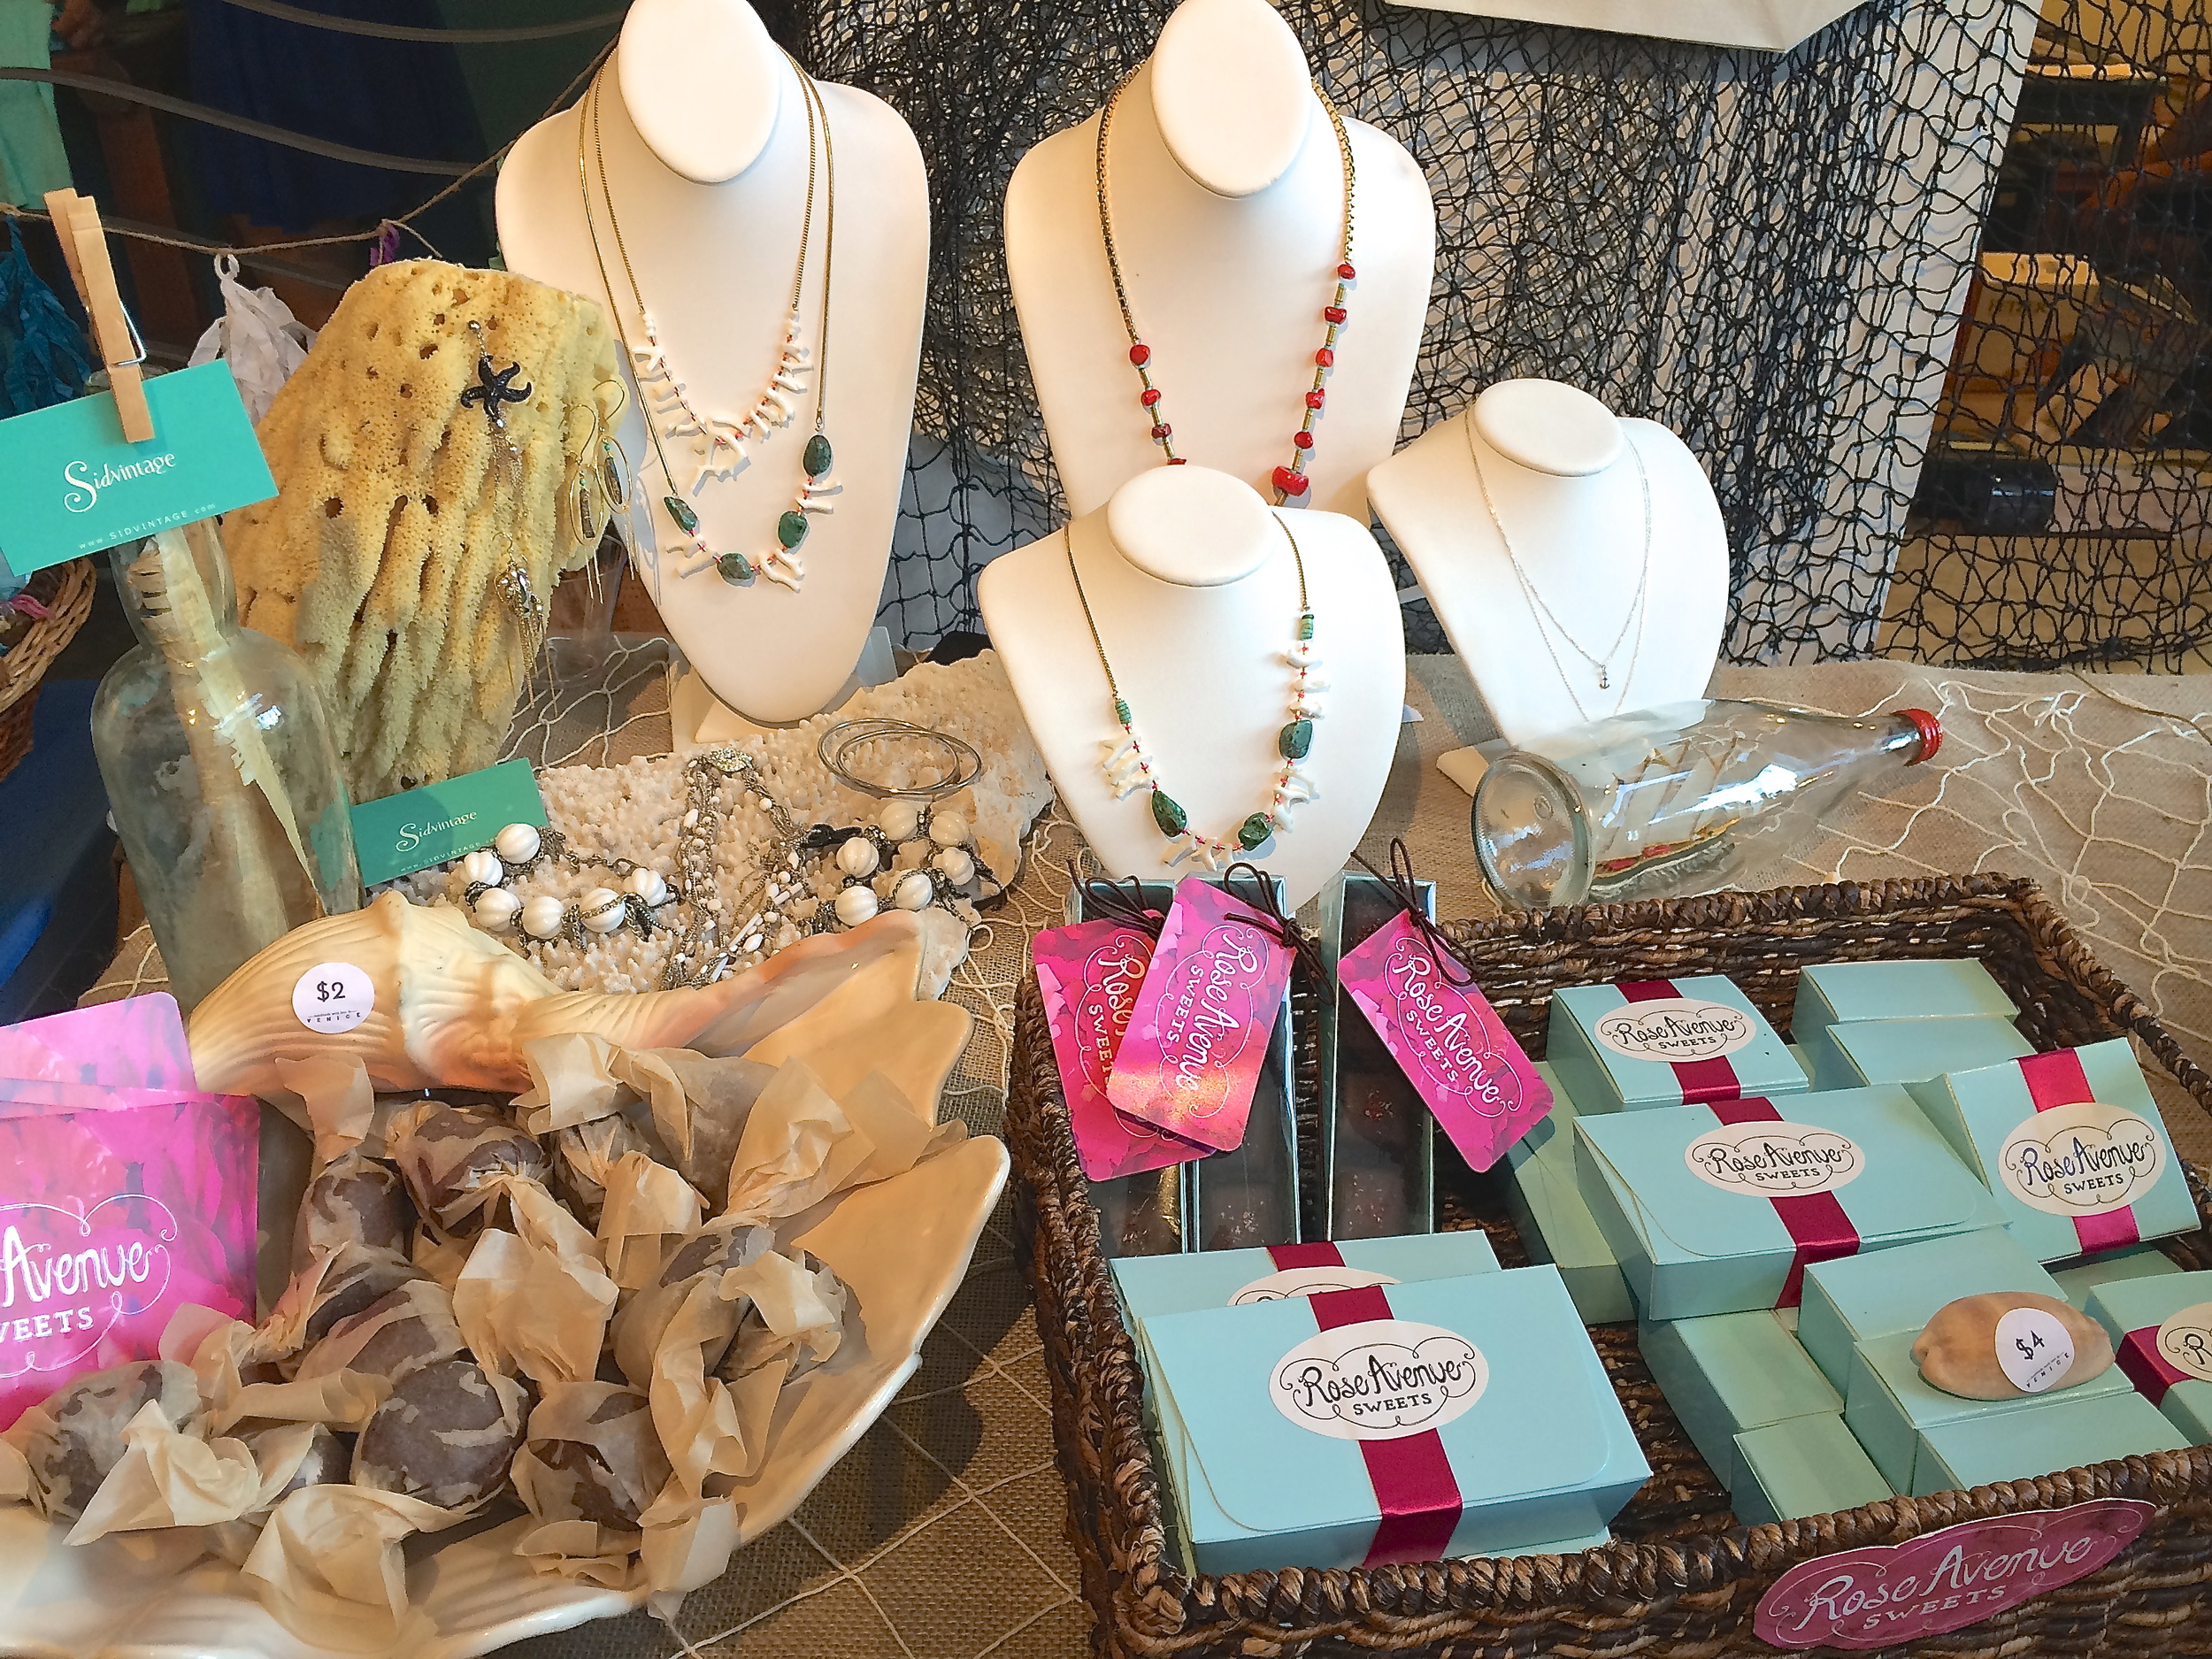 Mermaid treats. Coral and turquoise necklaces from Sid Vintage and sea salt caramels from Rose Avenue Sweets.